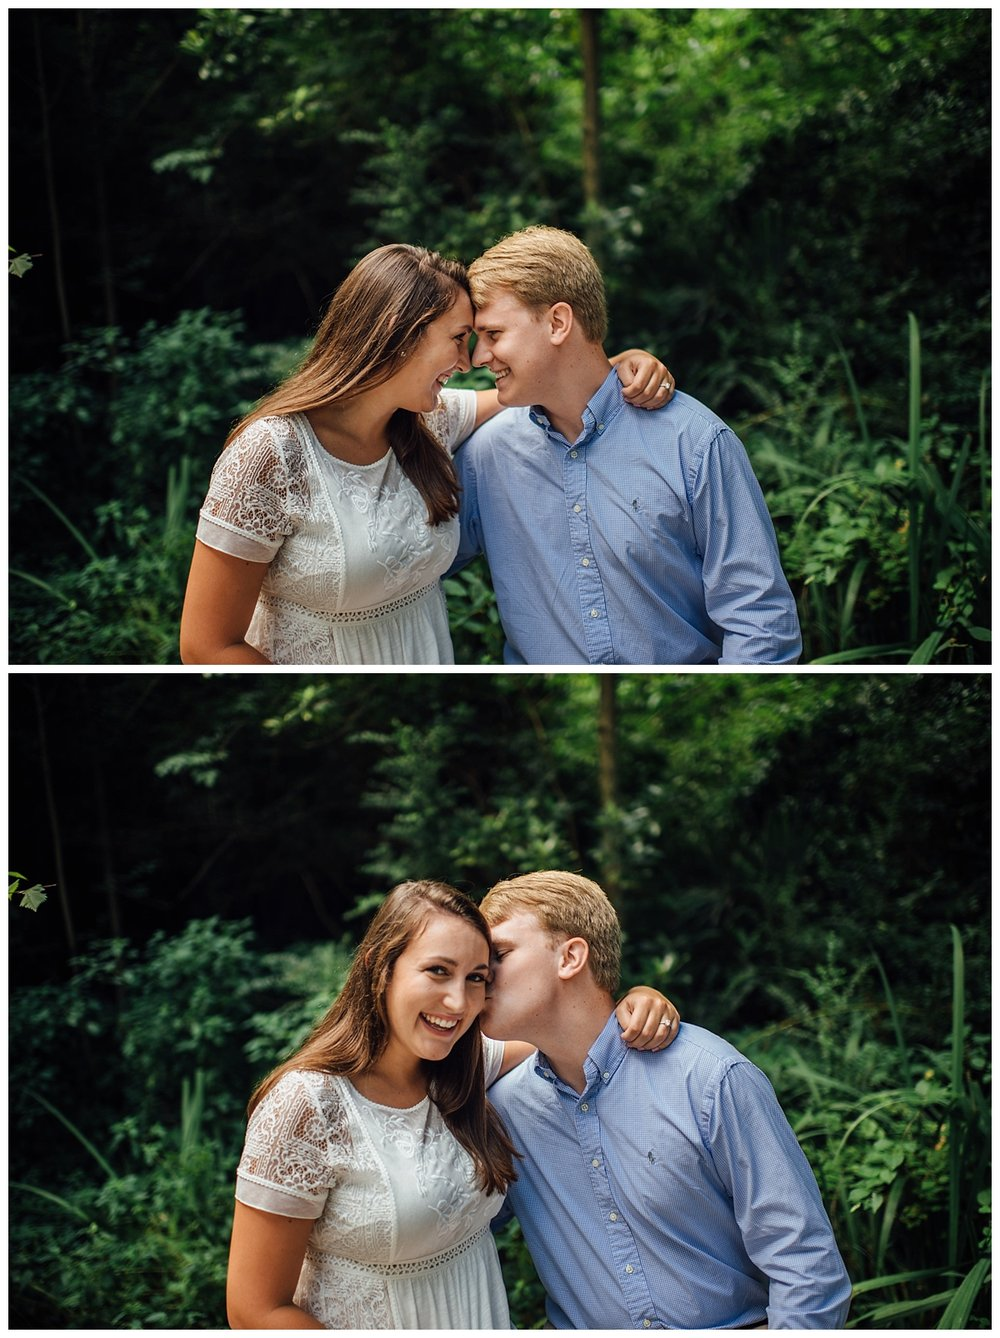 lindsey ann photography, engaged, birmingham engagement, wedding photographer, birmingham wedding photographer, botanical gardens